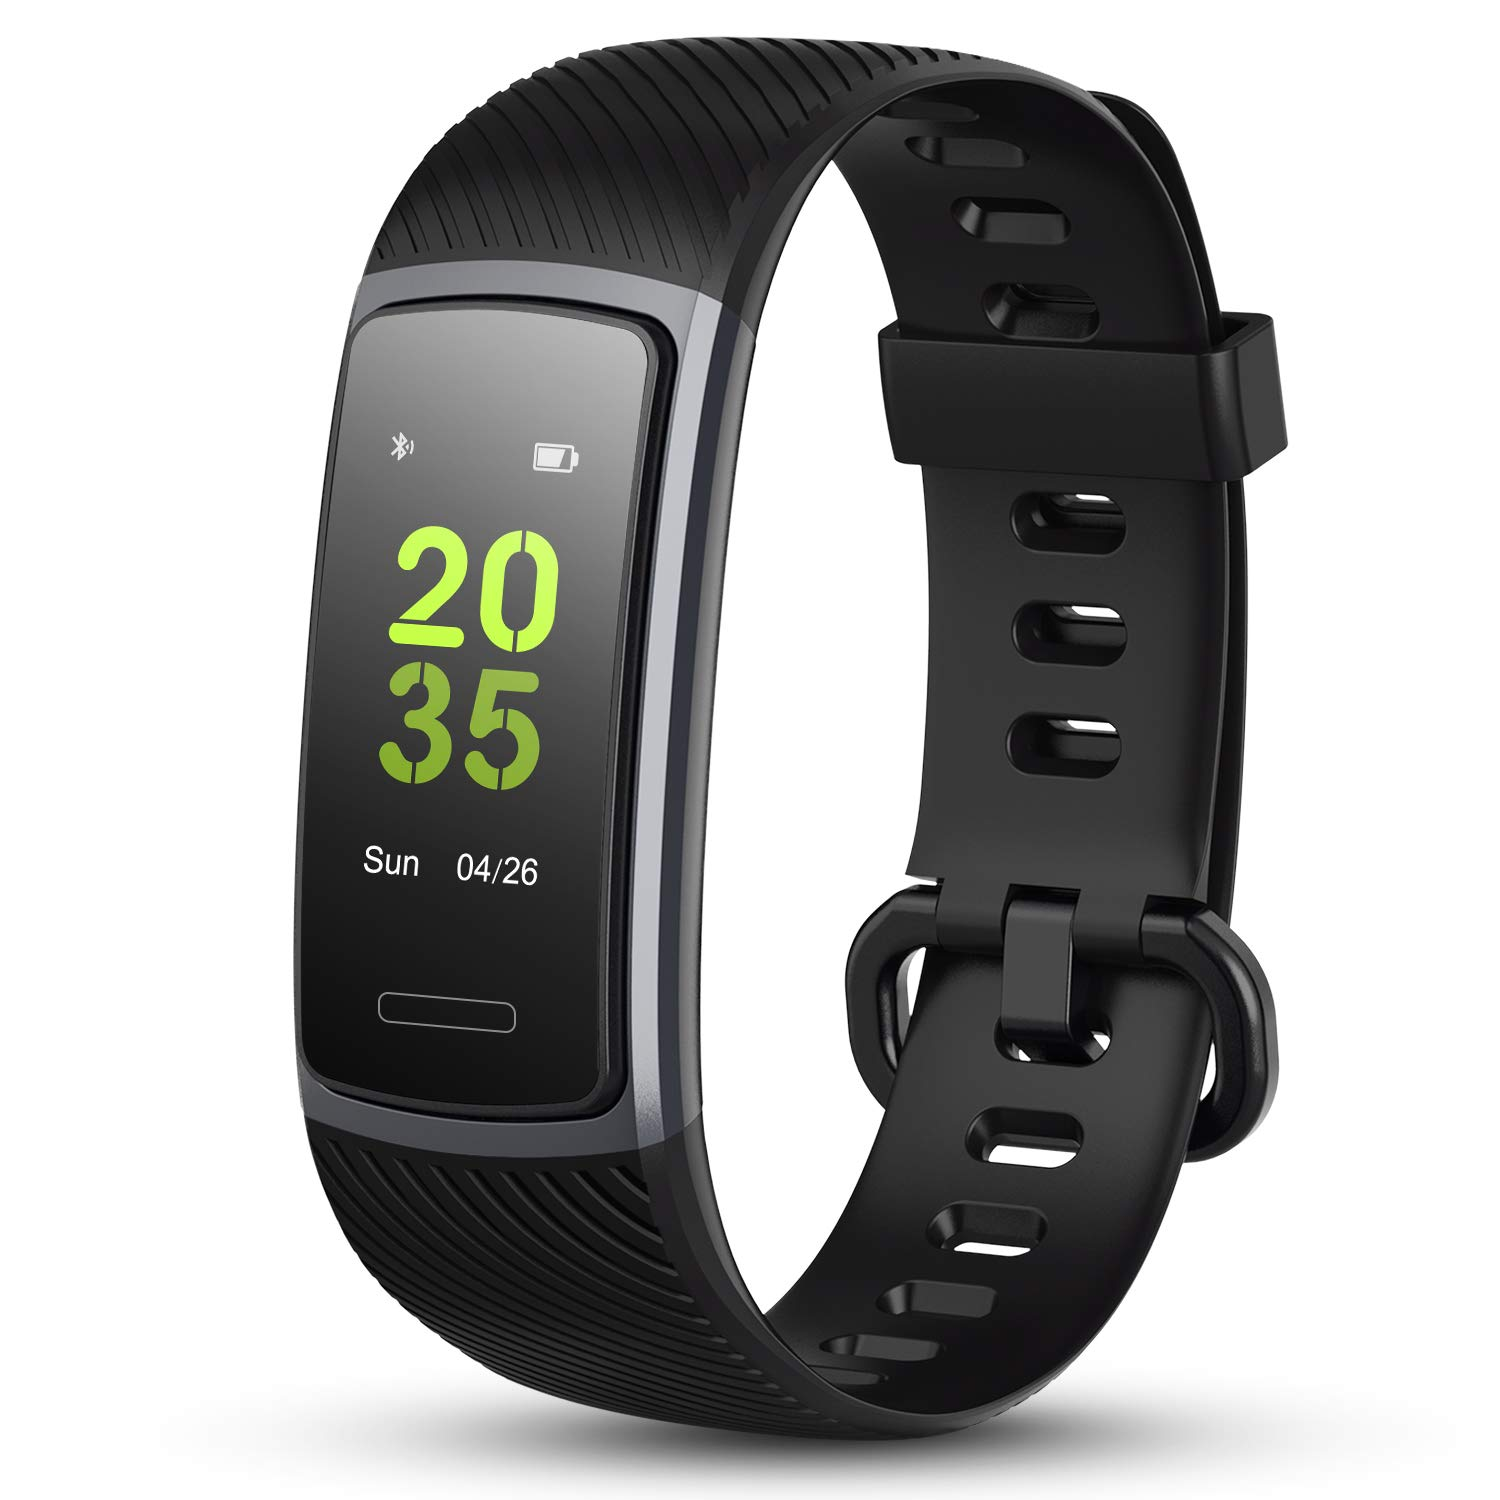 LETSCOM Fitness Tracker HR, IP68 Water Resistant Color Screen Activity Tracker Smart Watch with Heart Rate Monitor Step Counting Sleep Tracking Calorie Counter Pedometer Wrist Band for Women Men Kids